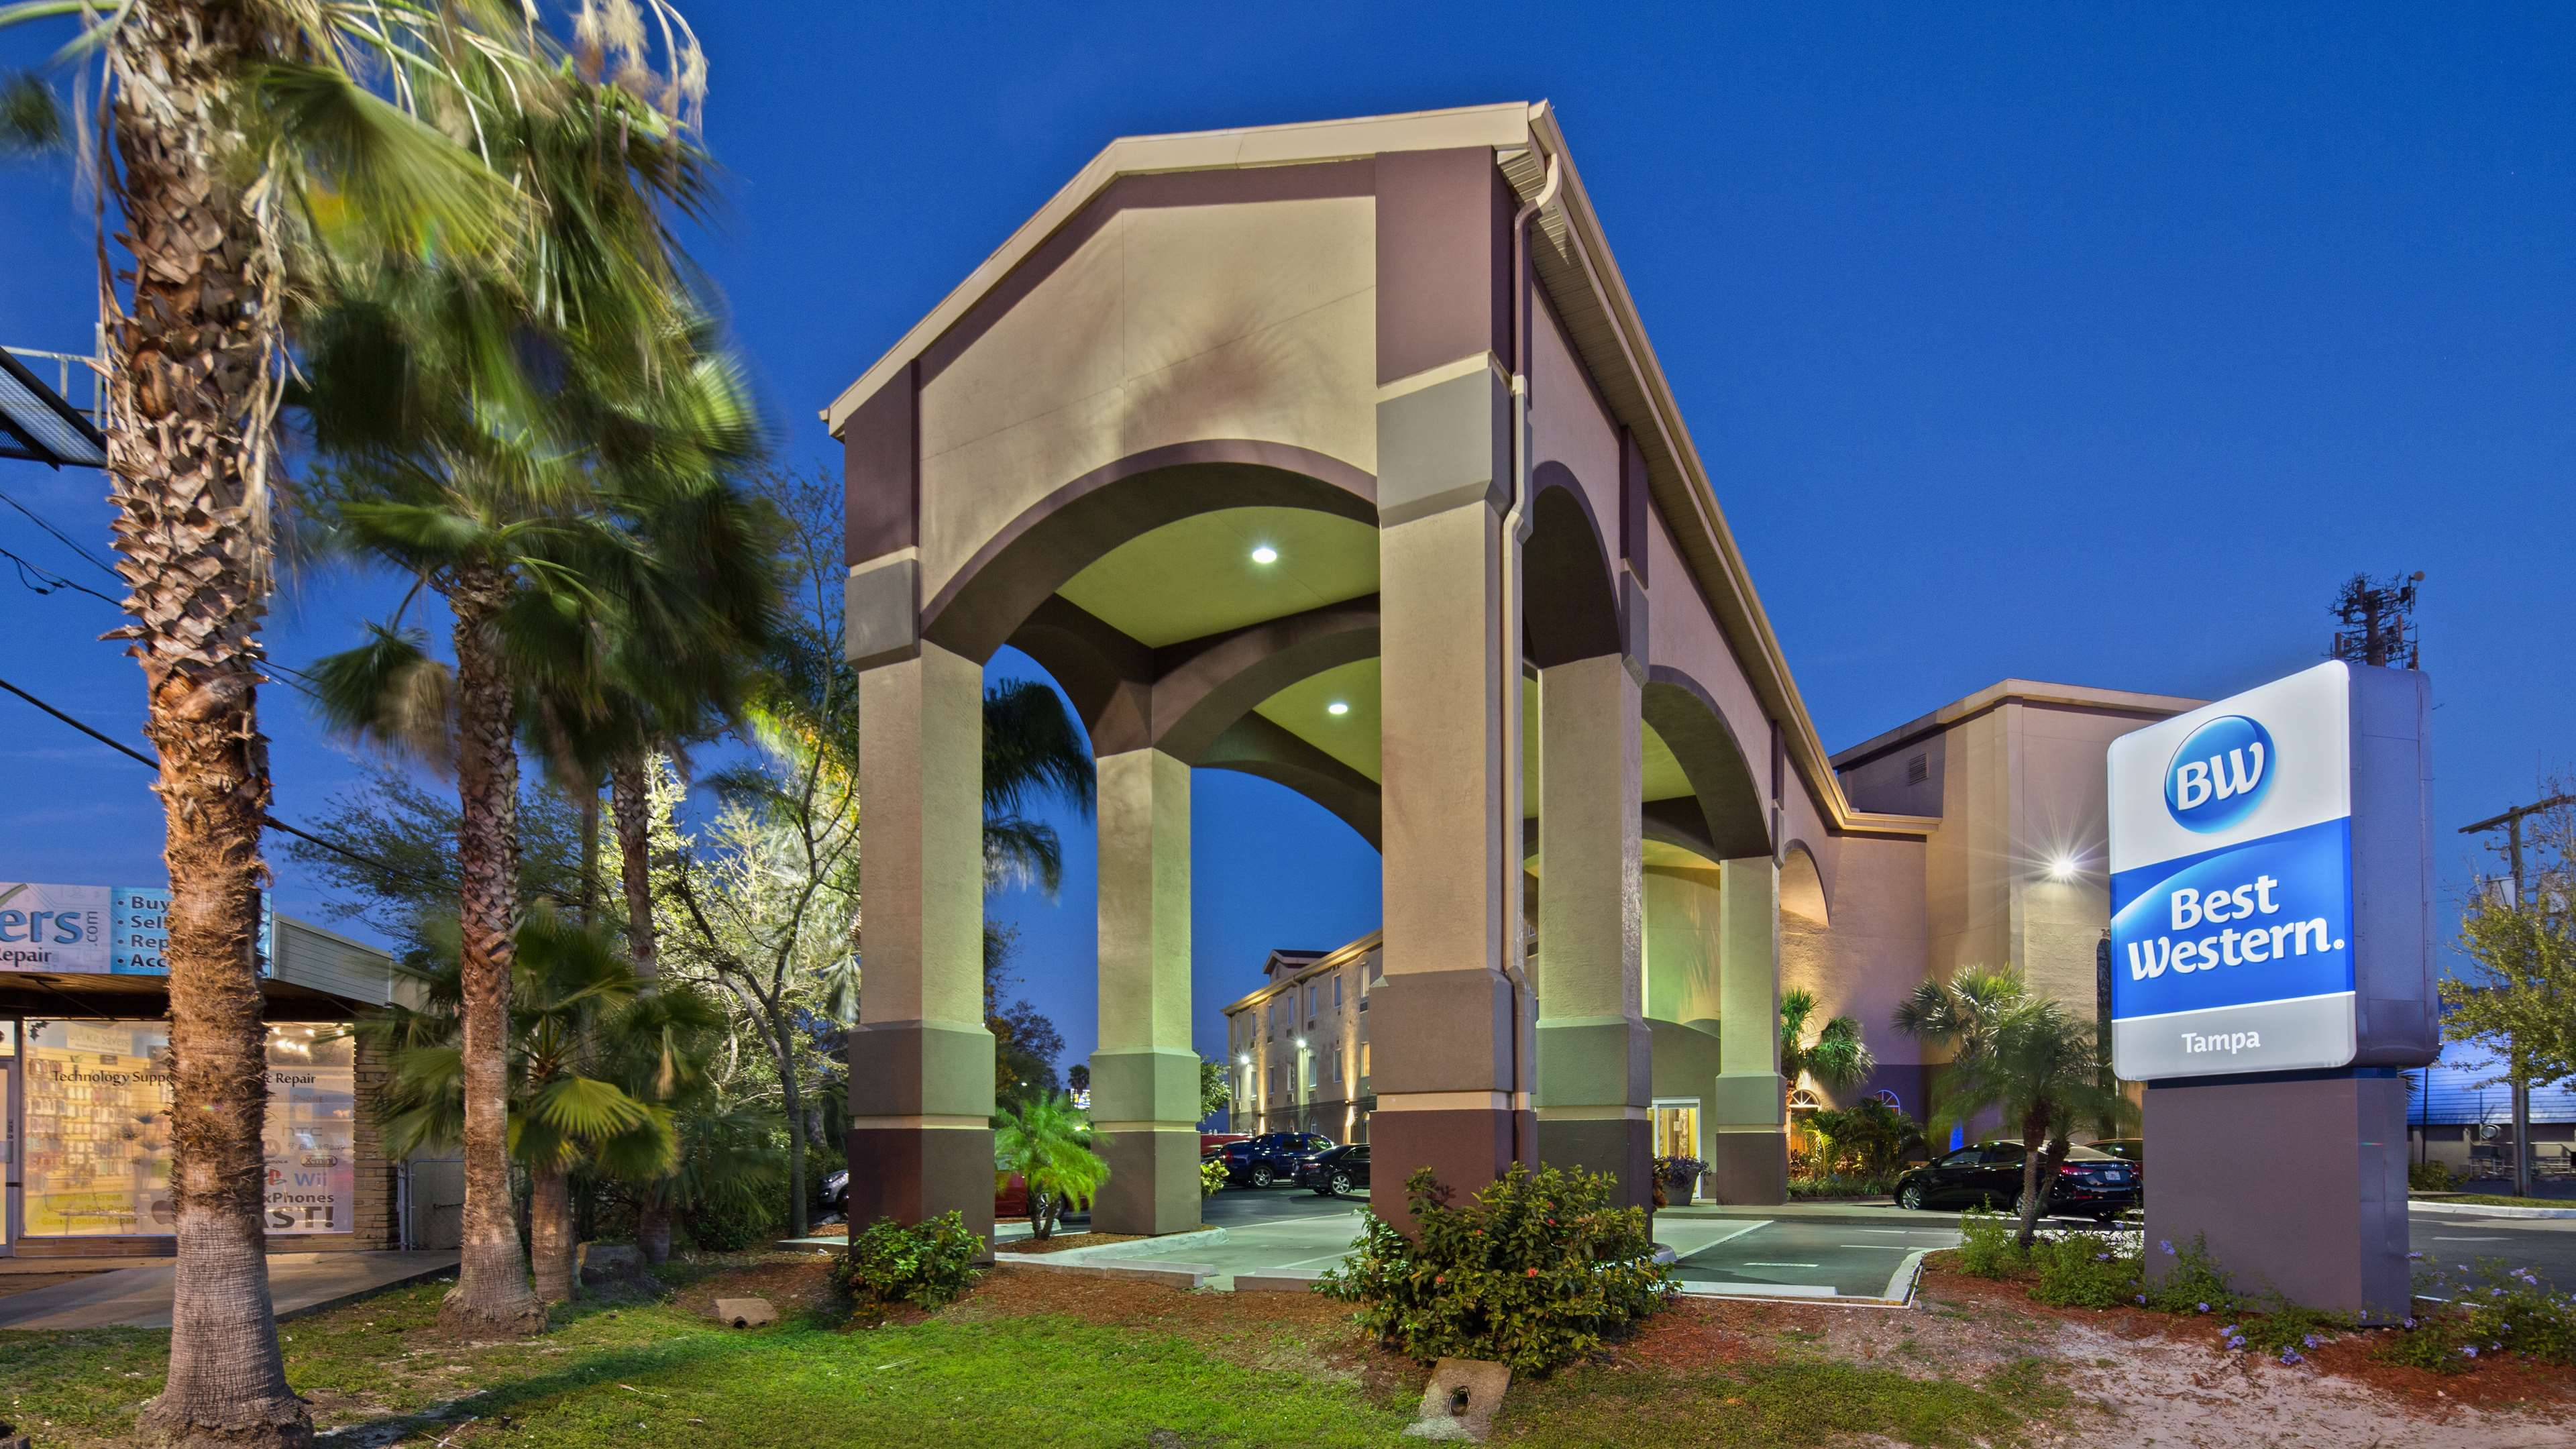 Best Western Tampa image 8